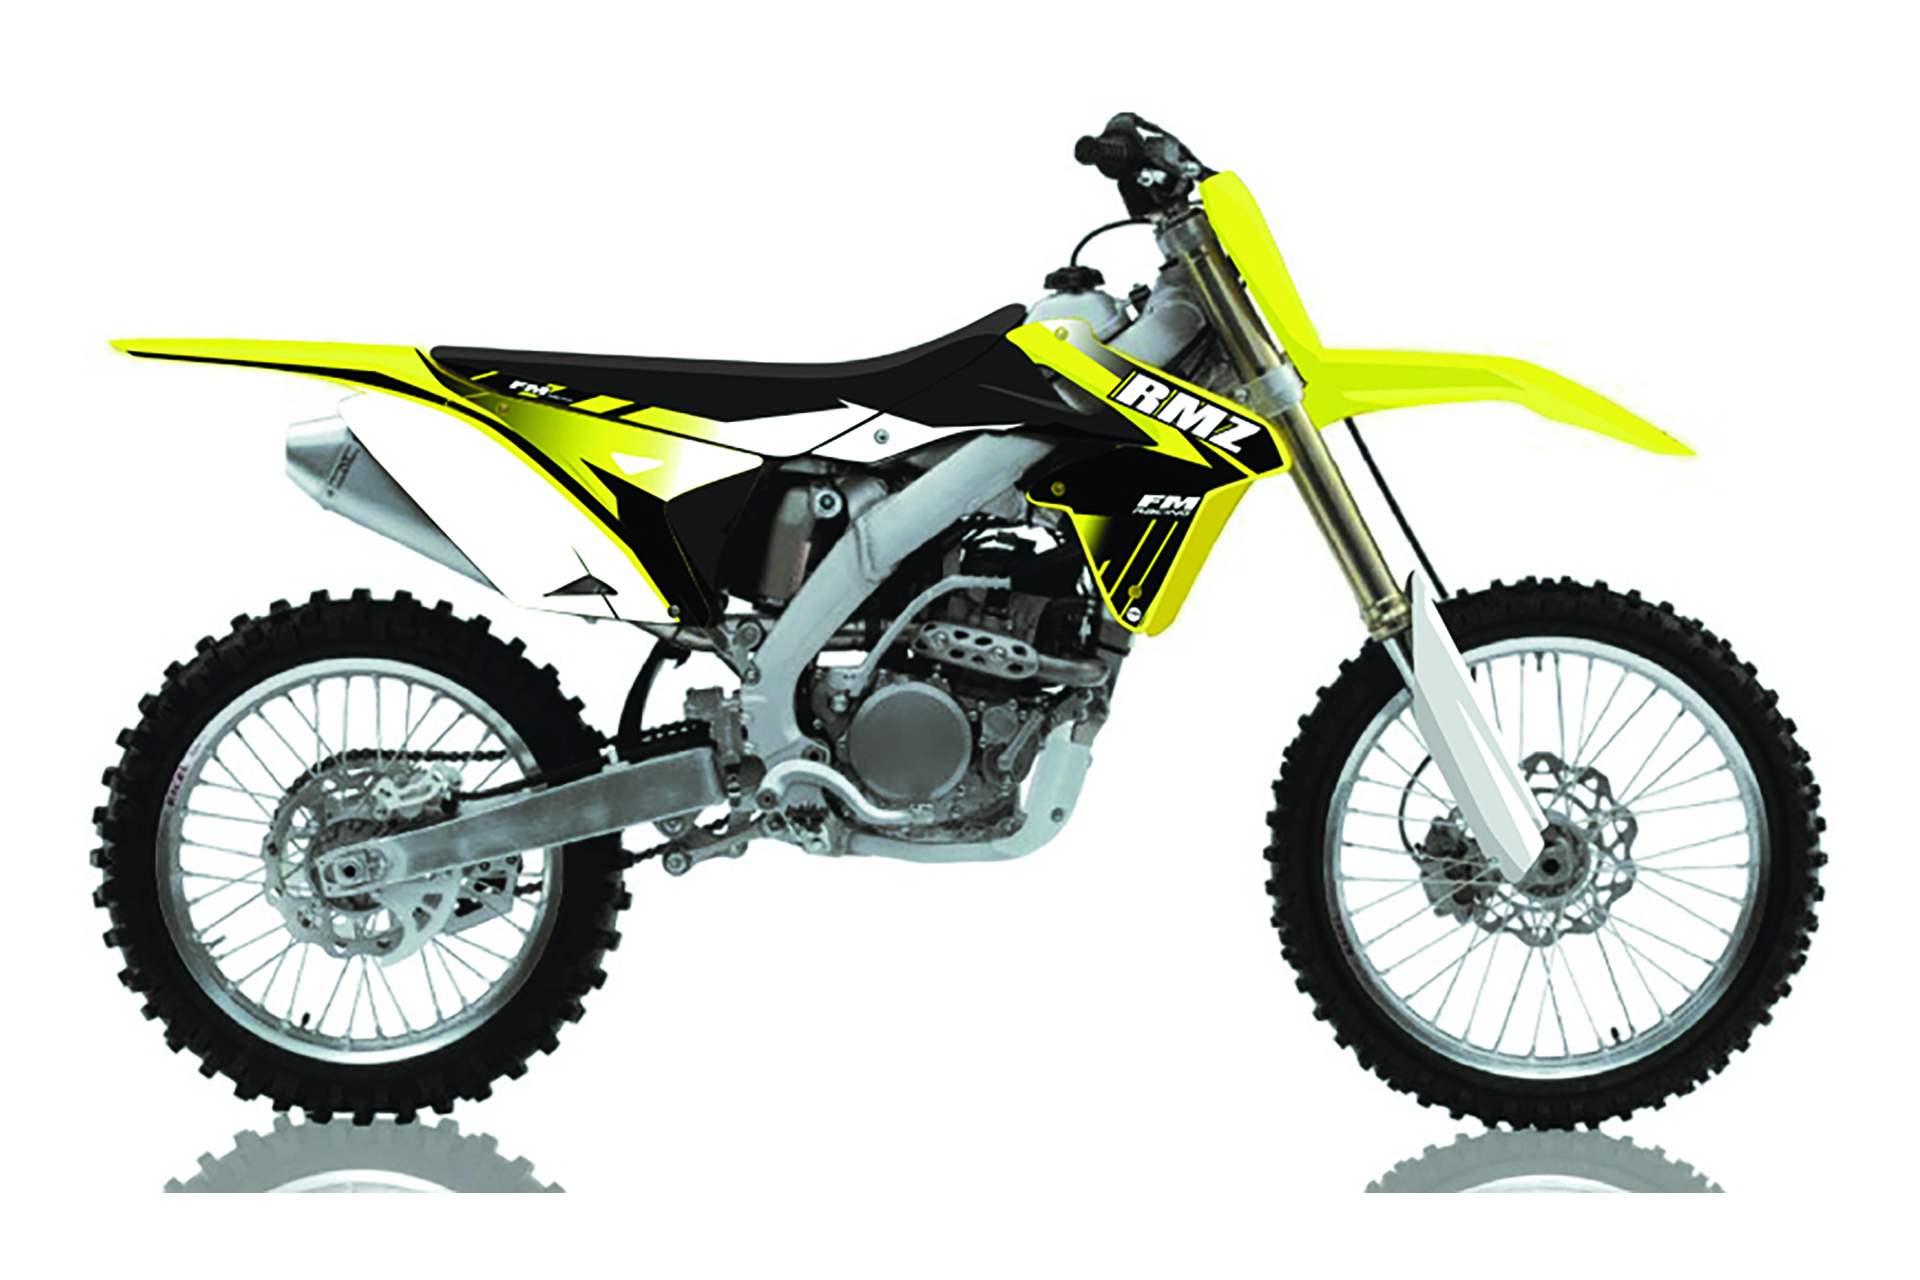 onafez, bike, cosmetic, mx, offload, off-road